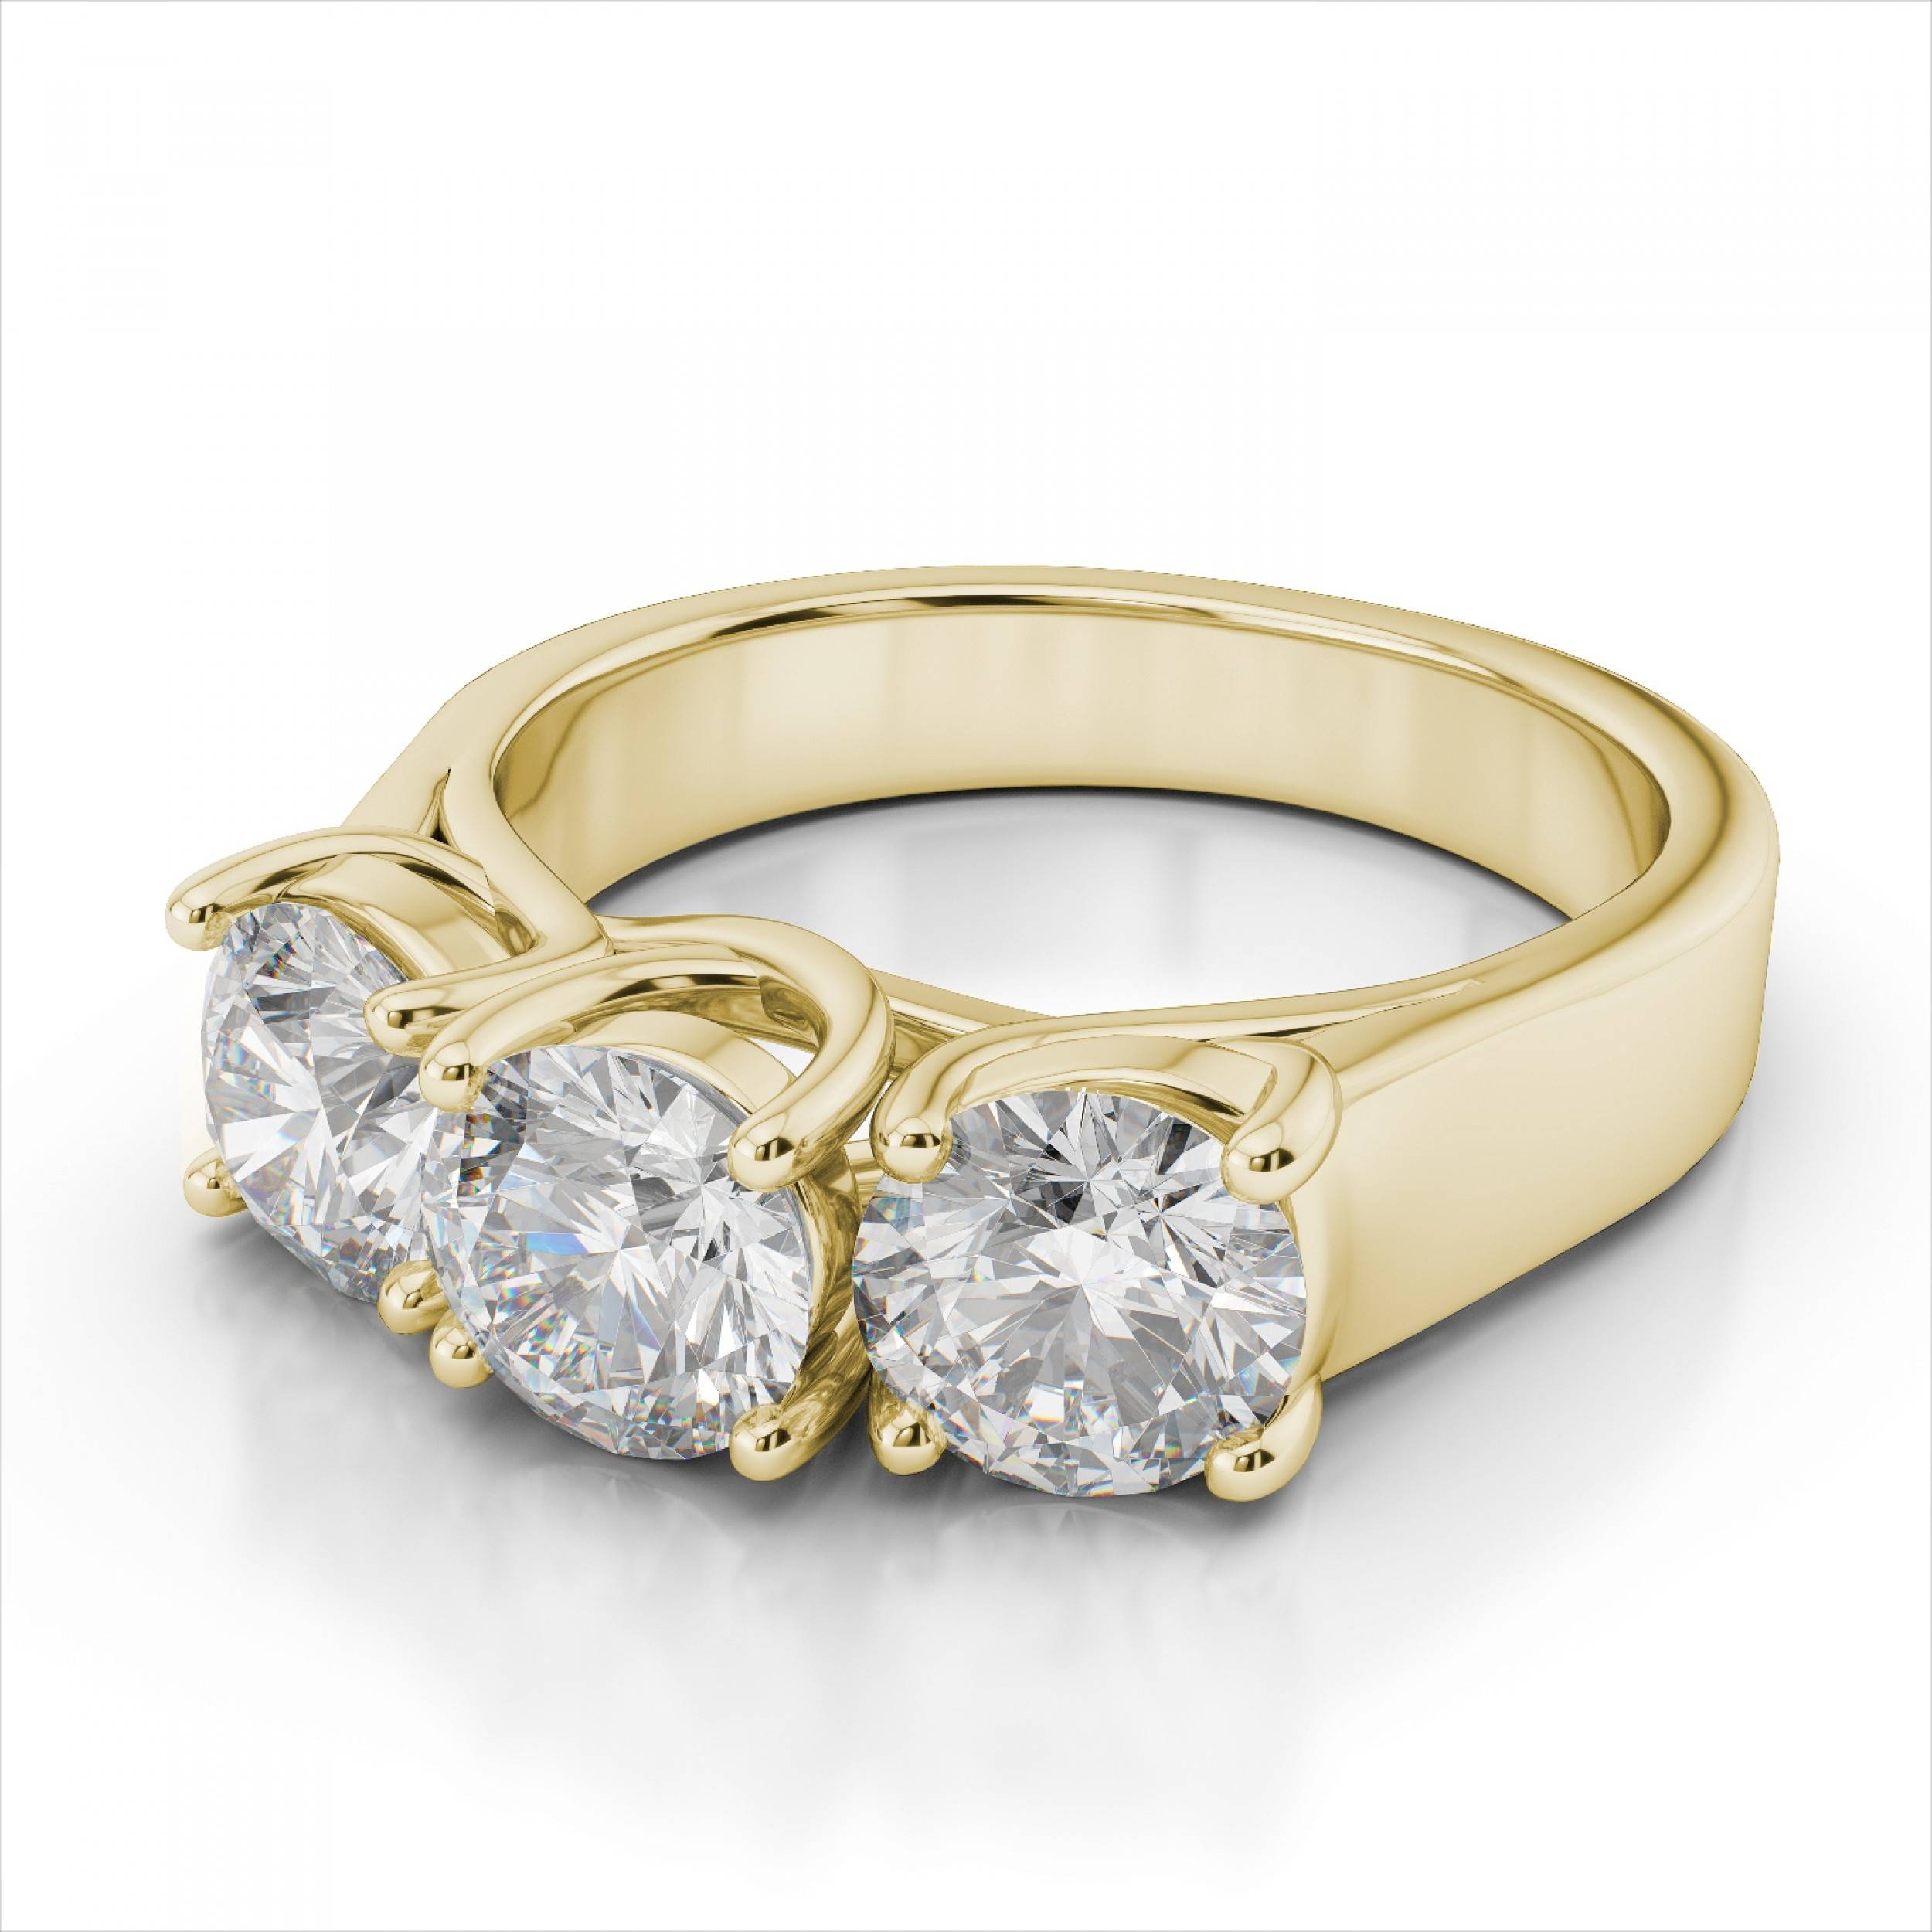 3 Stone Anniversary Diamond Rings | Wedding, Promise, Diamond Throughout 2017 Yellow Gold Anniversary Rings (View 3 of 25)